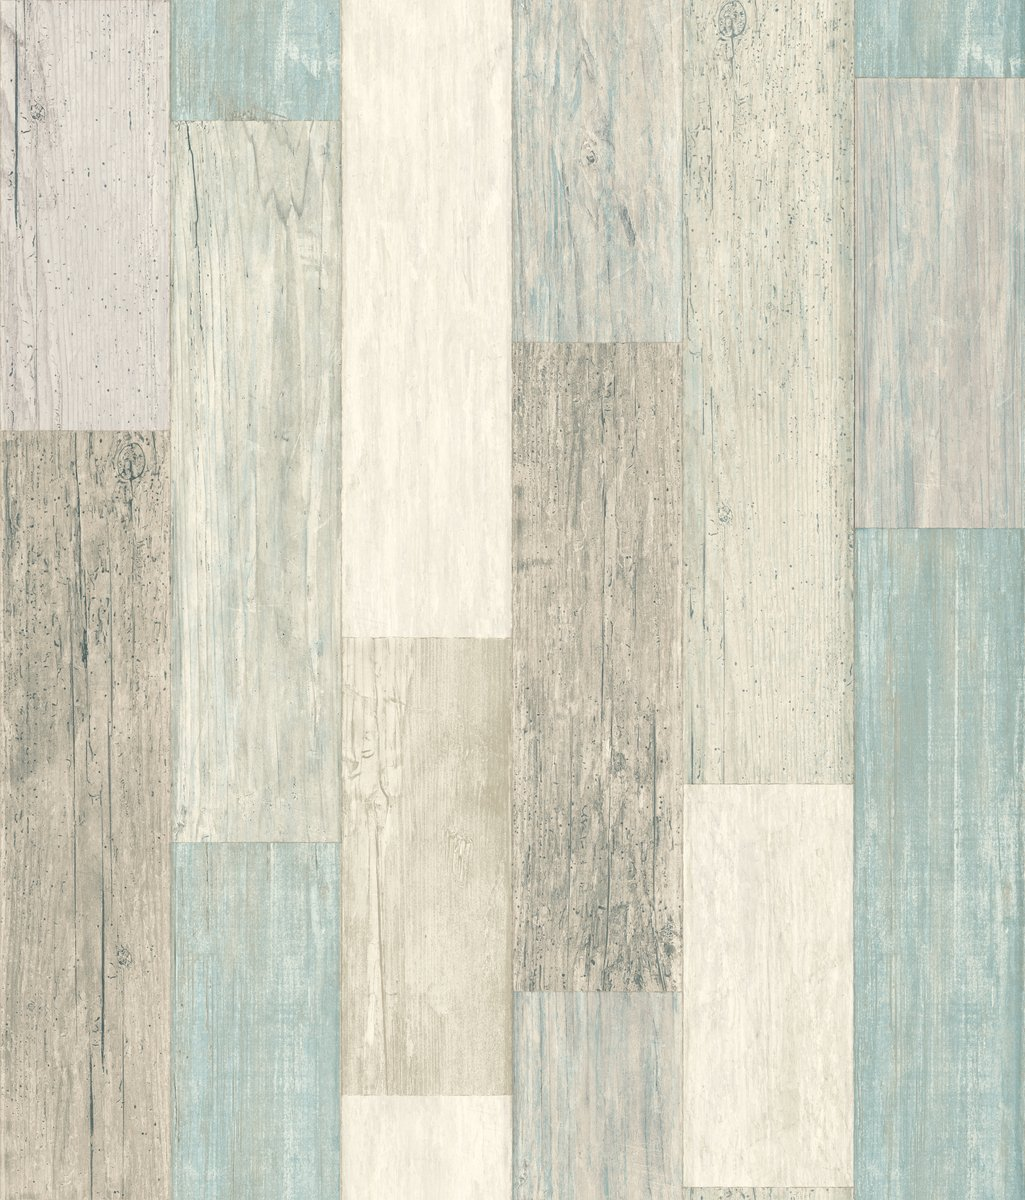 Coastal Weathered Plank Repositionable and Removable Peel and Stick Wallpaper